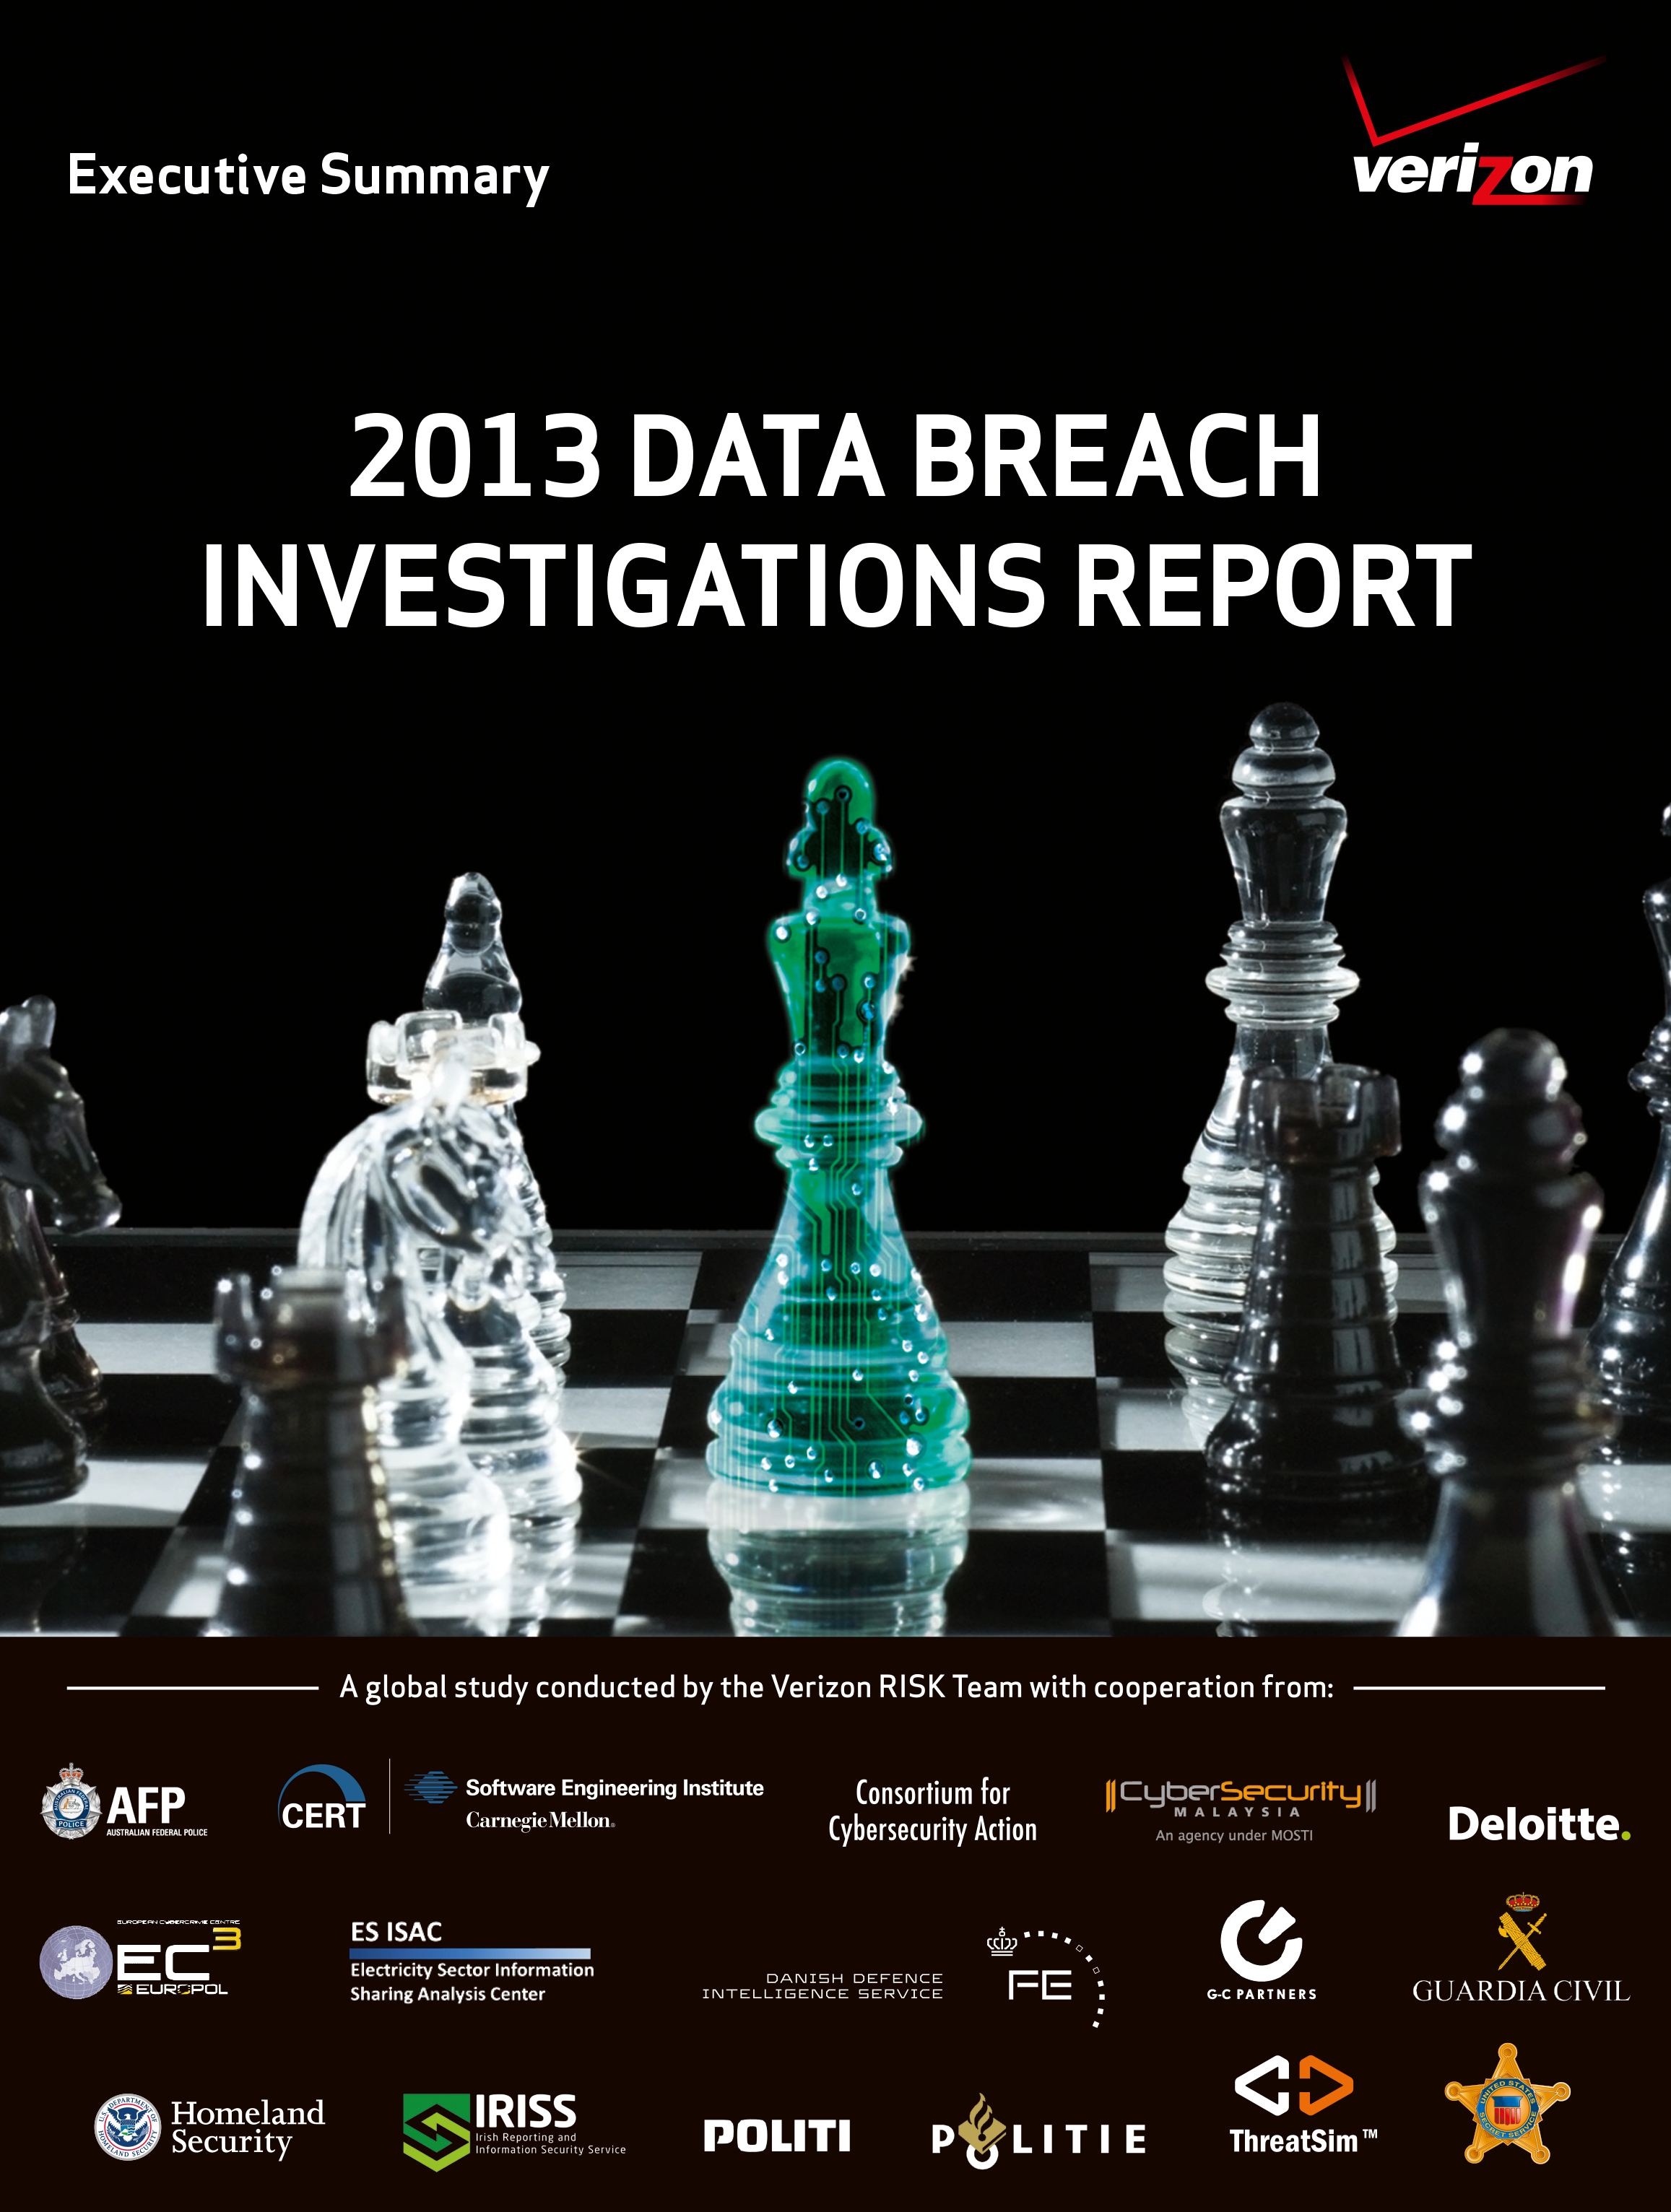 2013 Data Breach Investigations Report Executive Summary